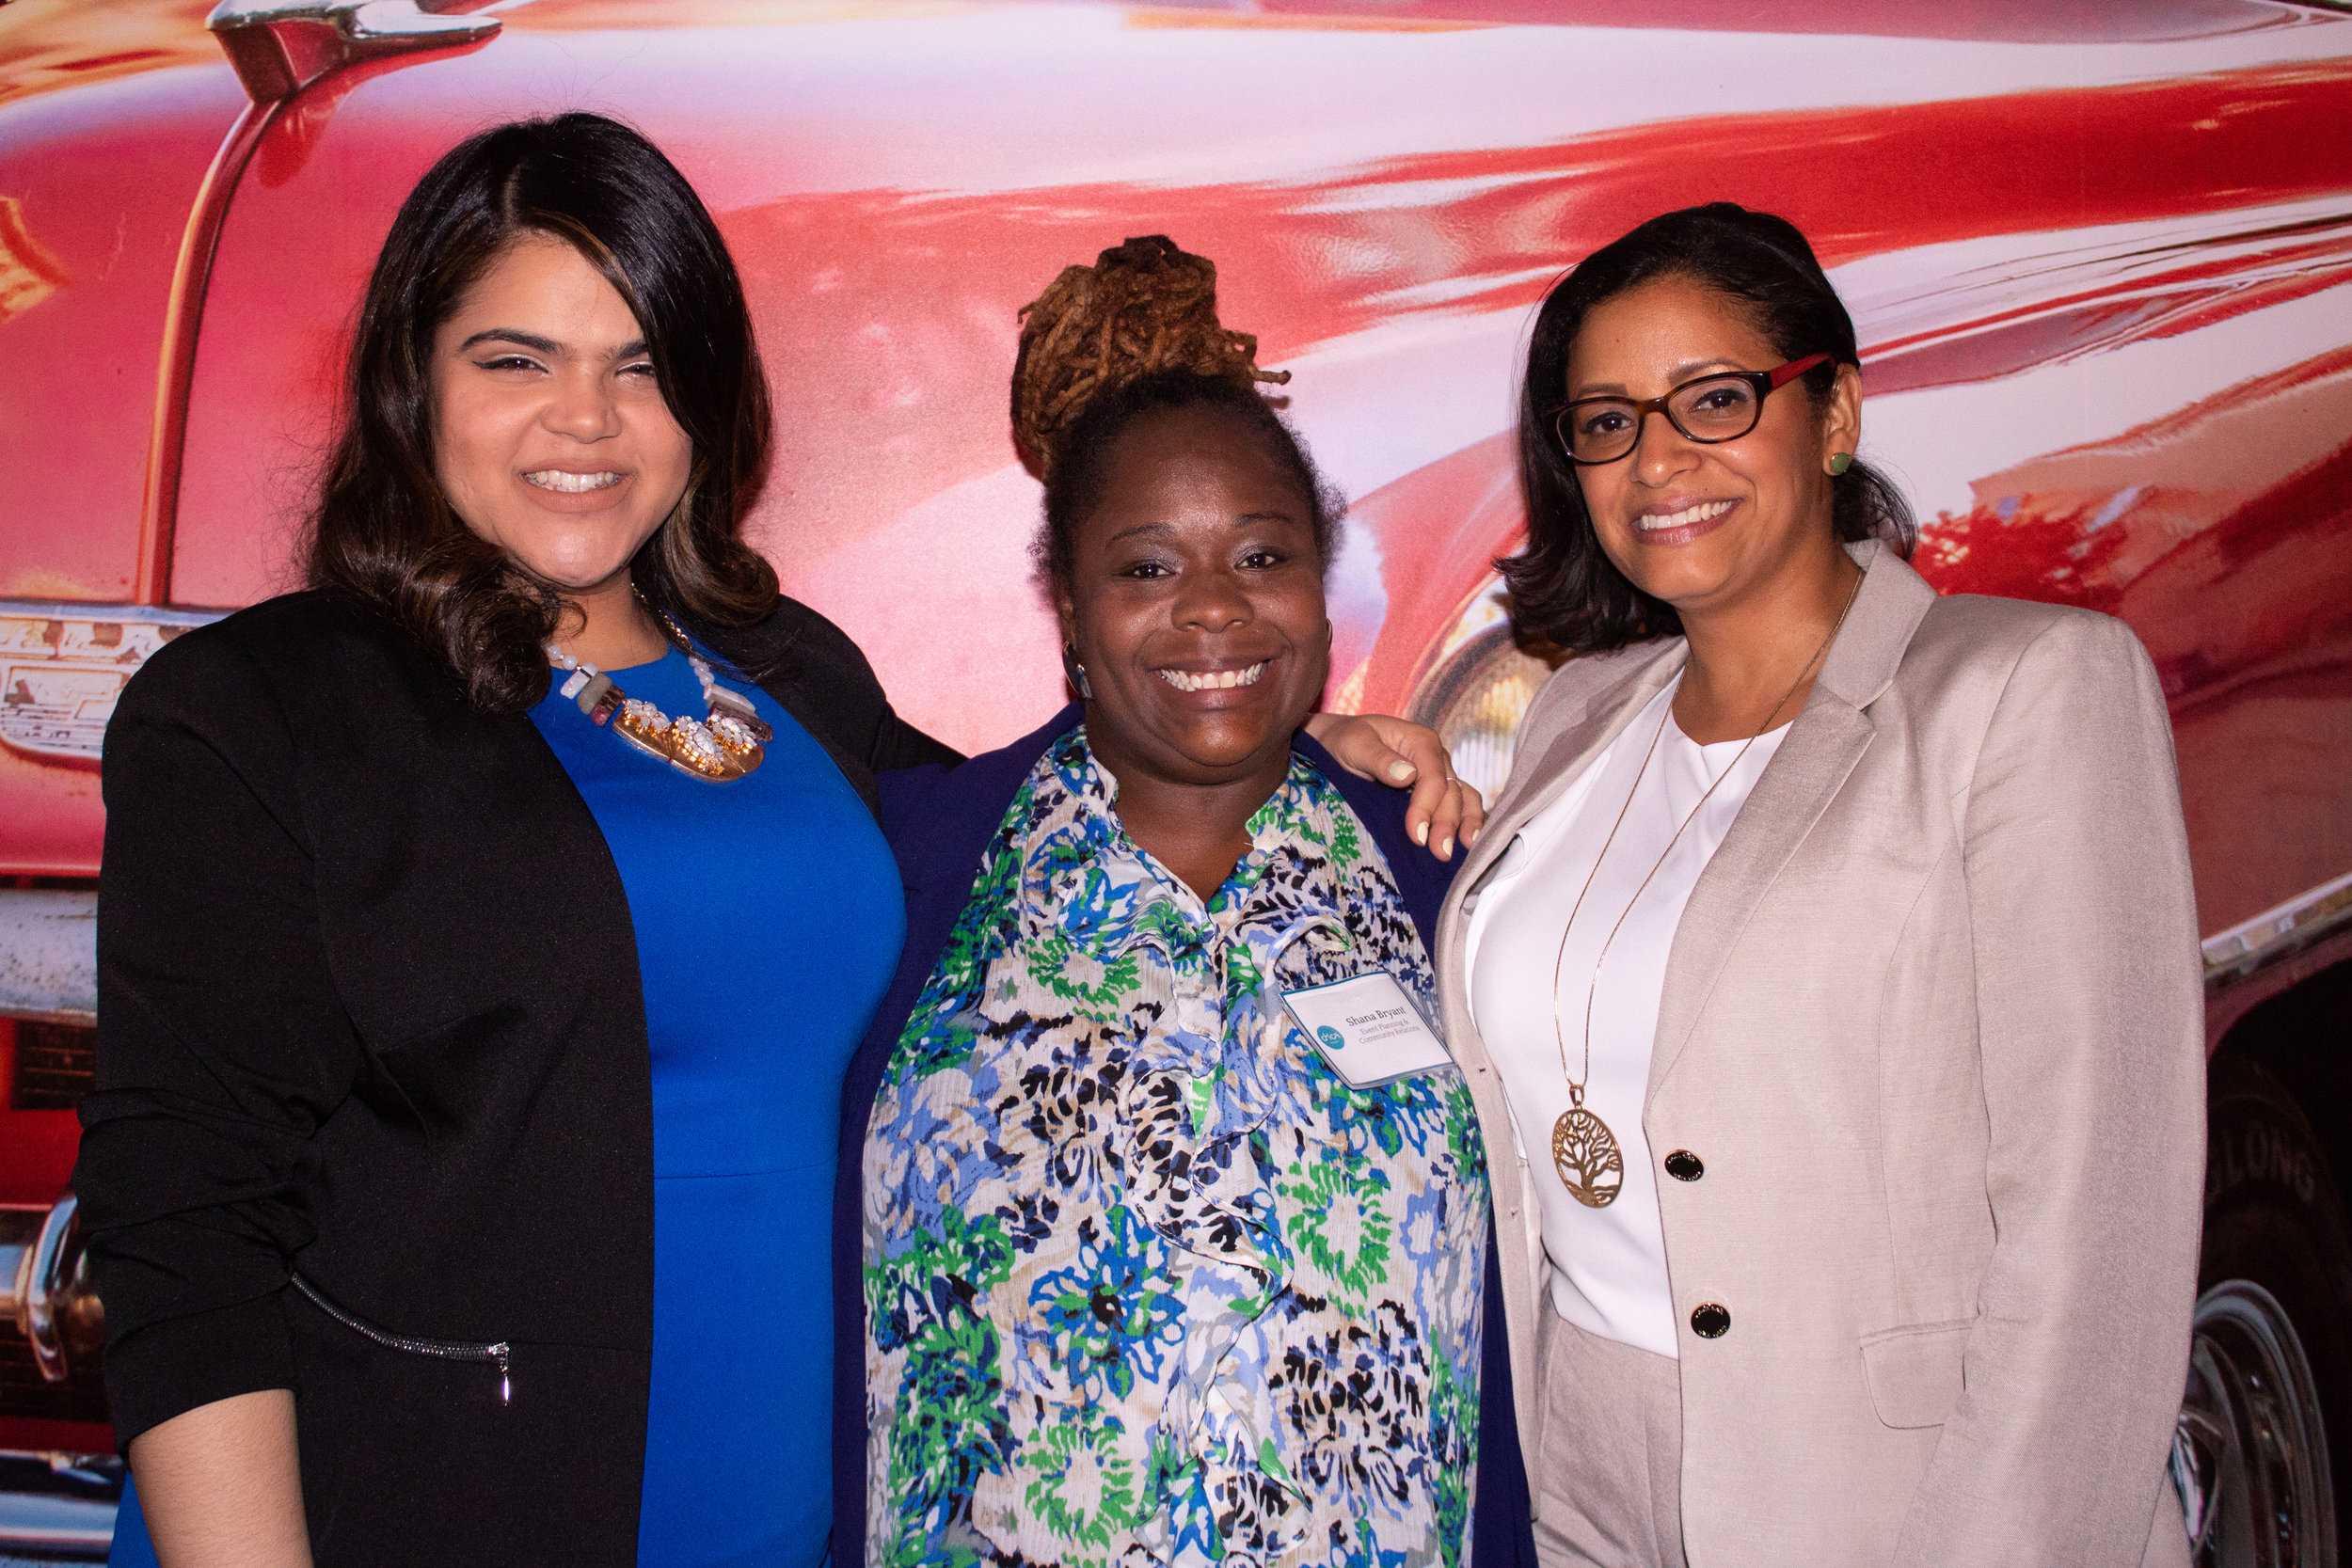 Shana Bryant (center) poses with Chica Project Interim Executive Director, Erika Rodriguez (left) and Chica Project Founder, Nurys Camargo (right).